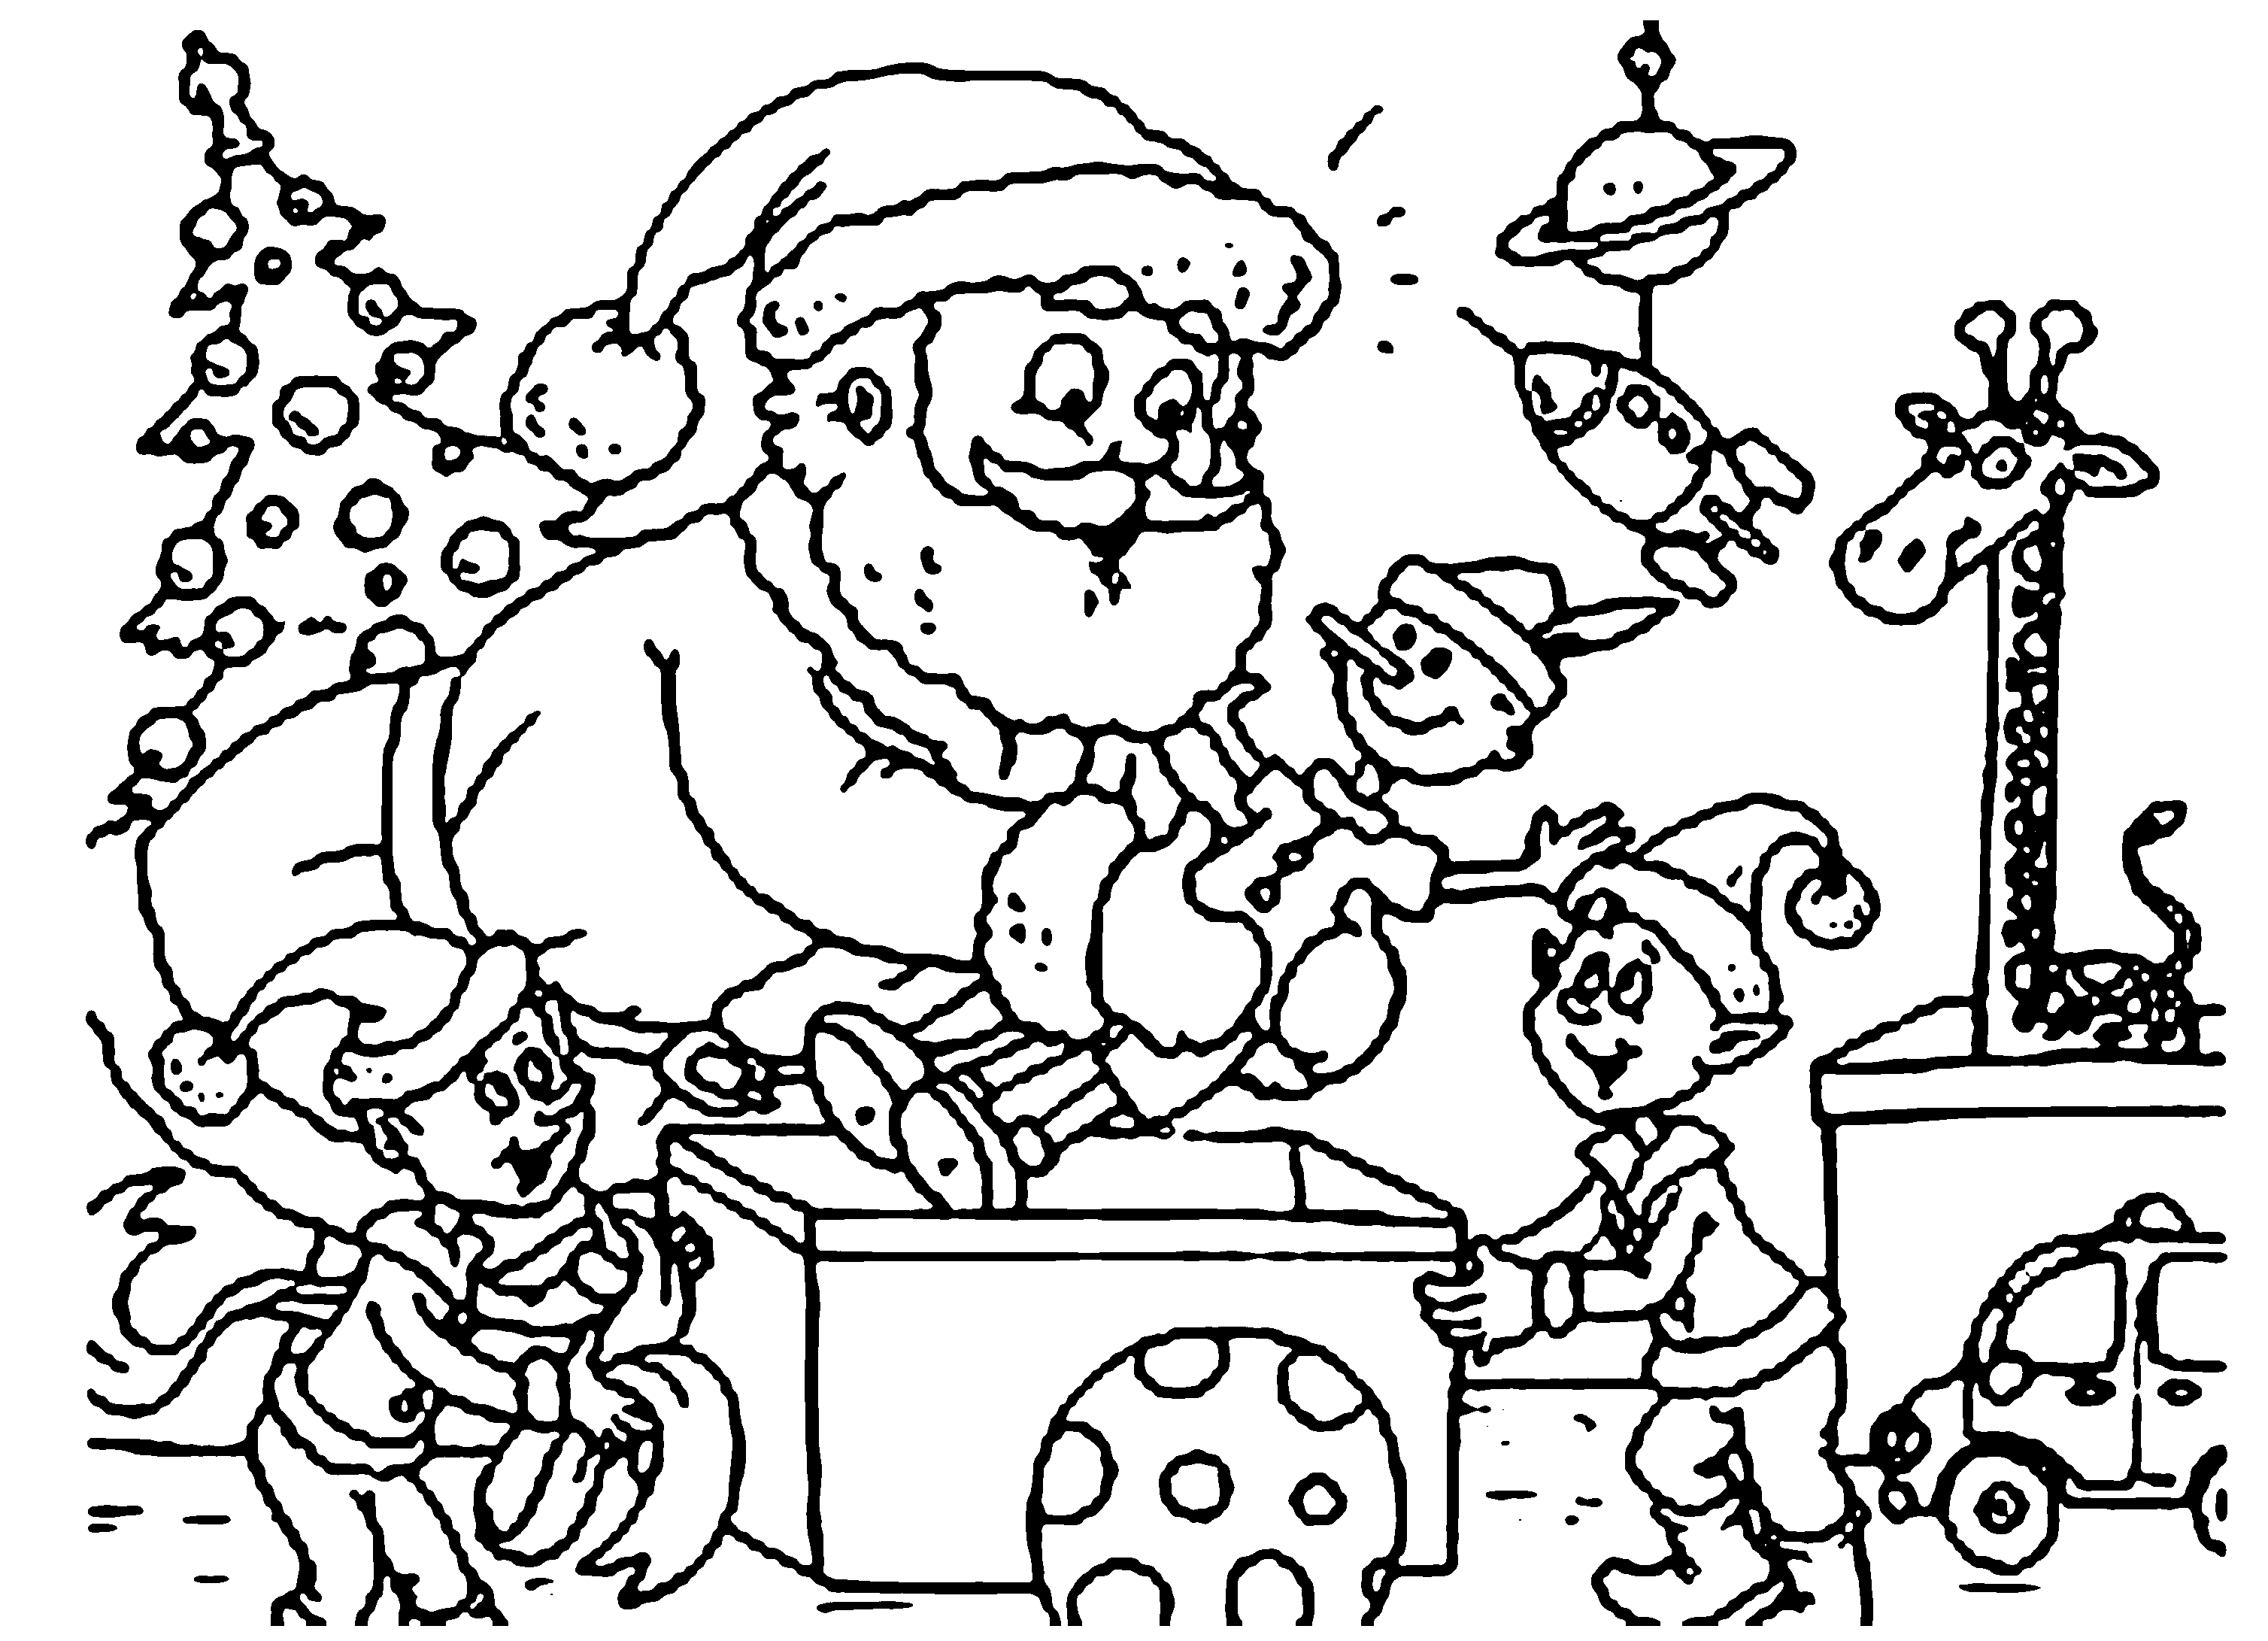 CHRISTMAS COLORING PAGES | Coloring Pages for Kids | Coloring Sheets ...